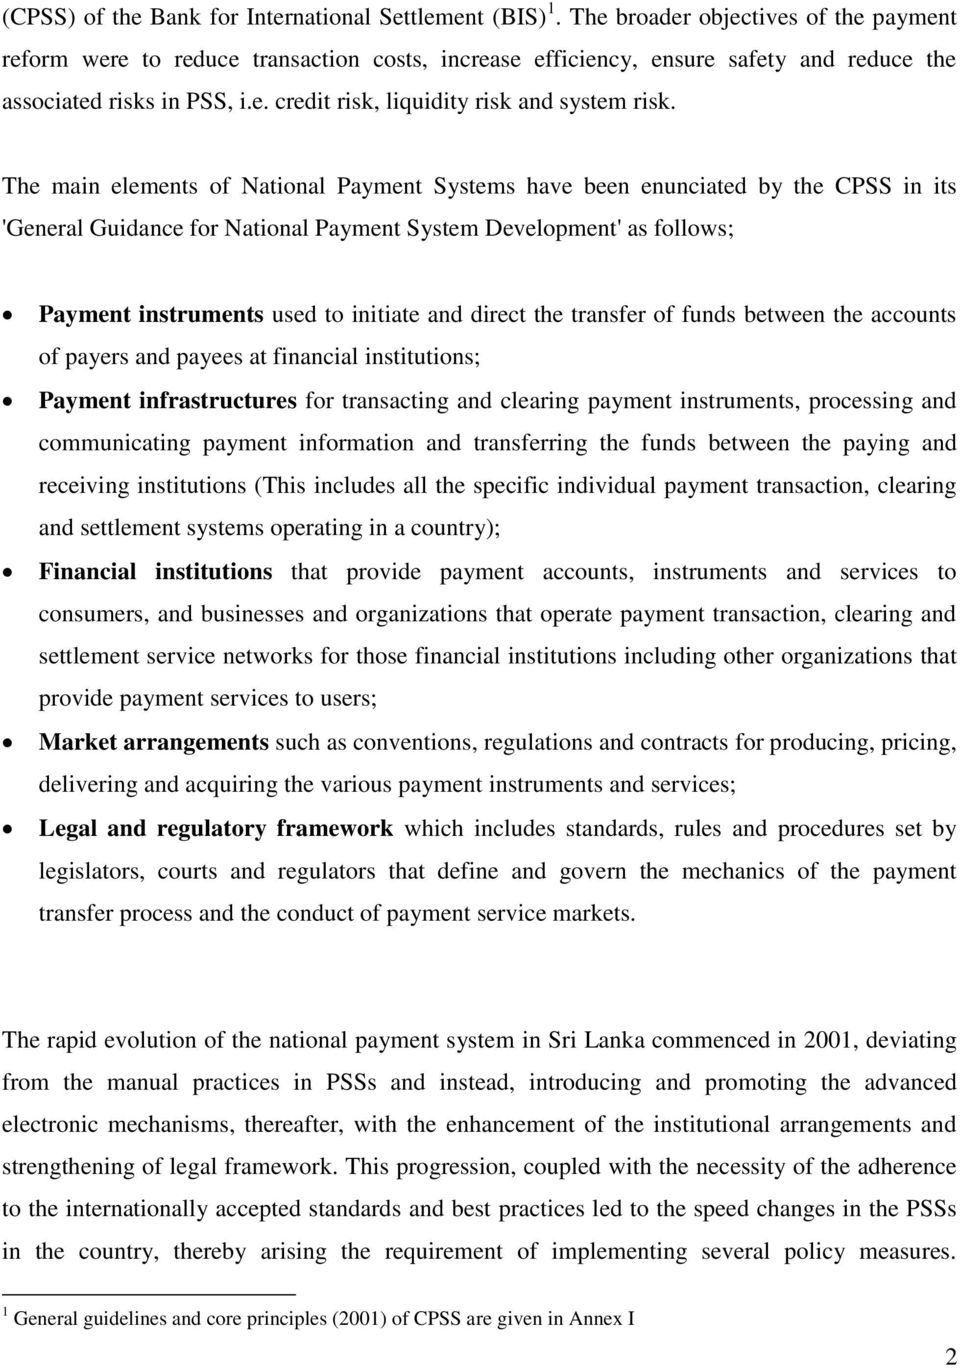 The main elements of National Payment Systems have been enunciated by the CPSS in its 'General Guidance for National Payment System Development' as follows; Payment instruments used to initiate and